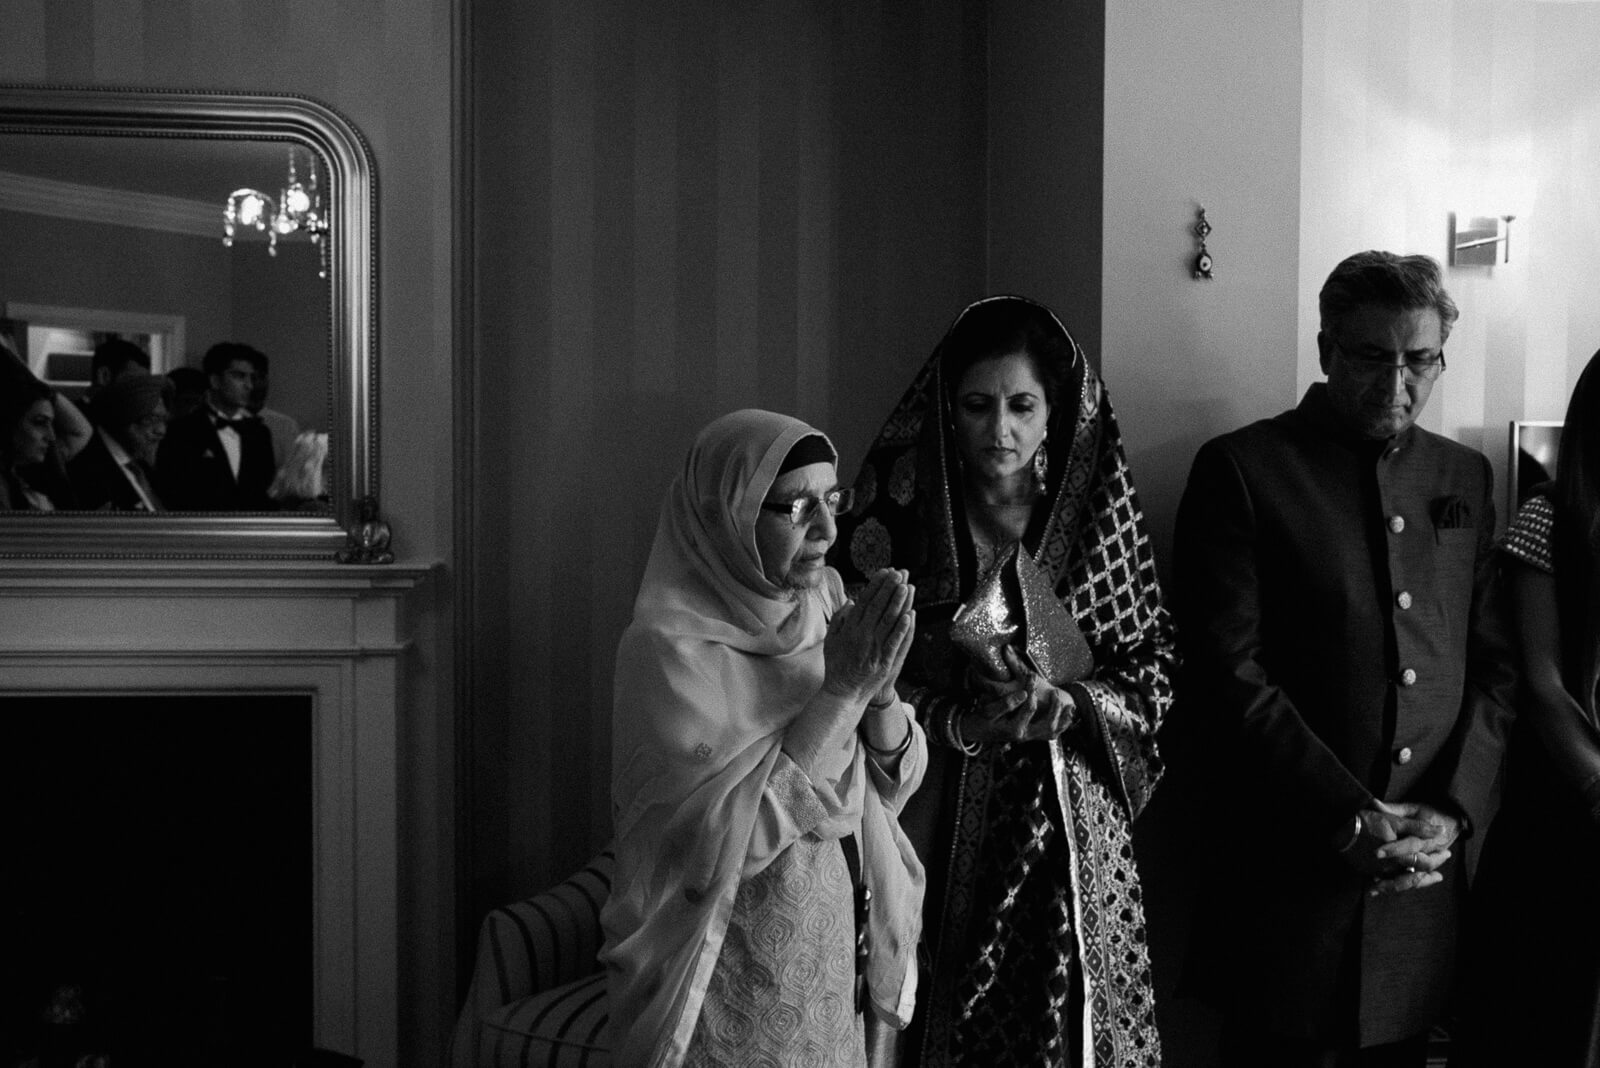 Hindu grooms family pray before he leaves for his humanist wedding at Marylebone One, London